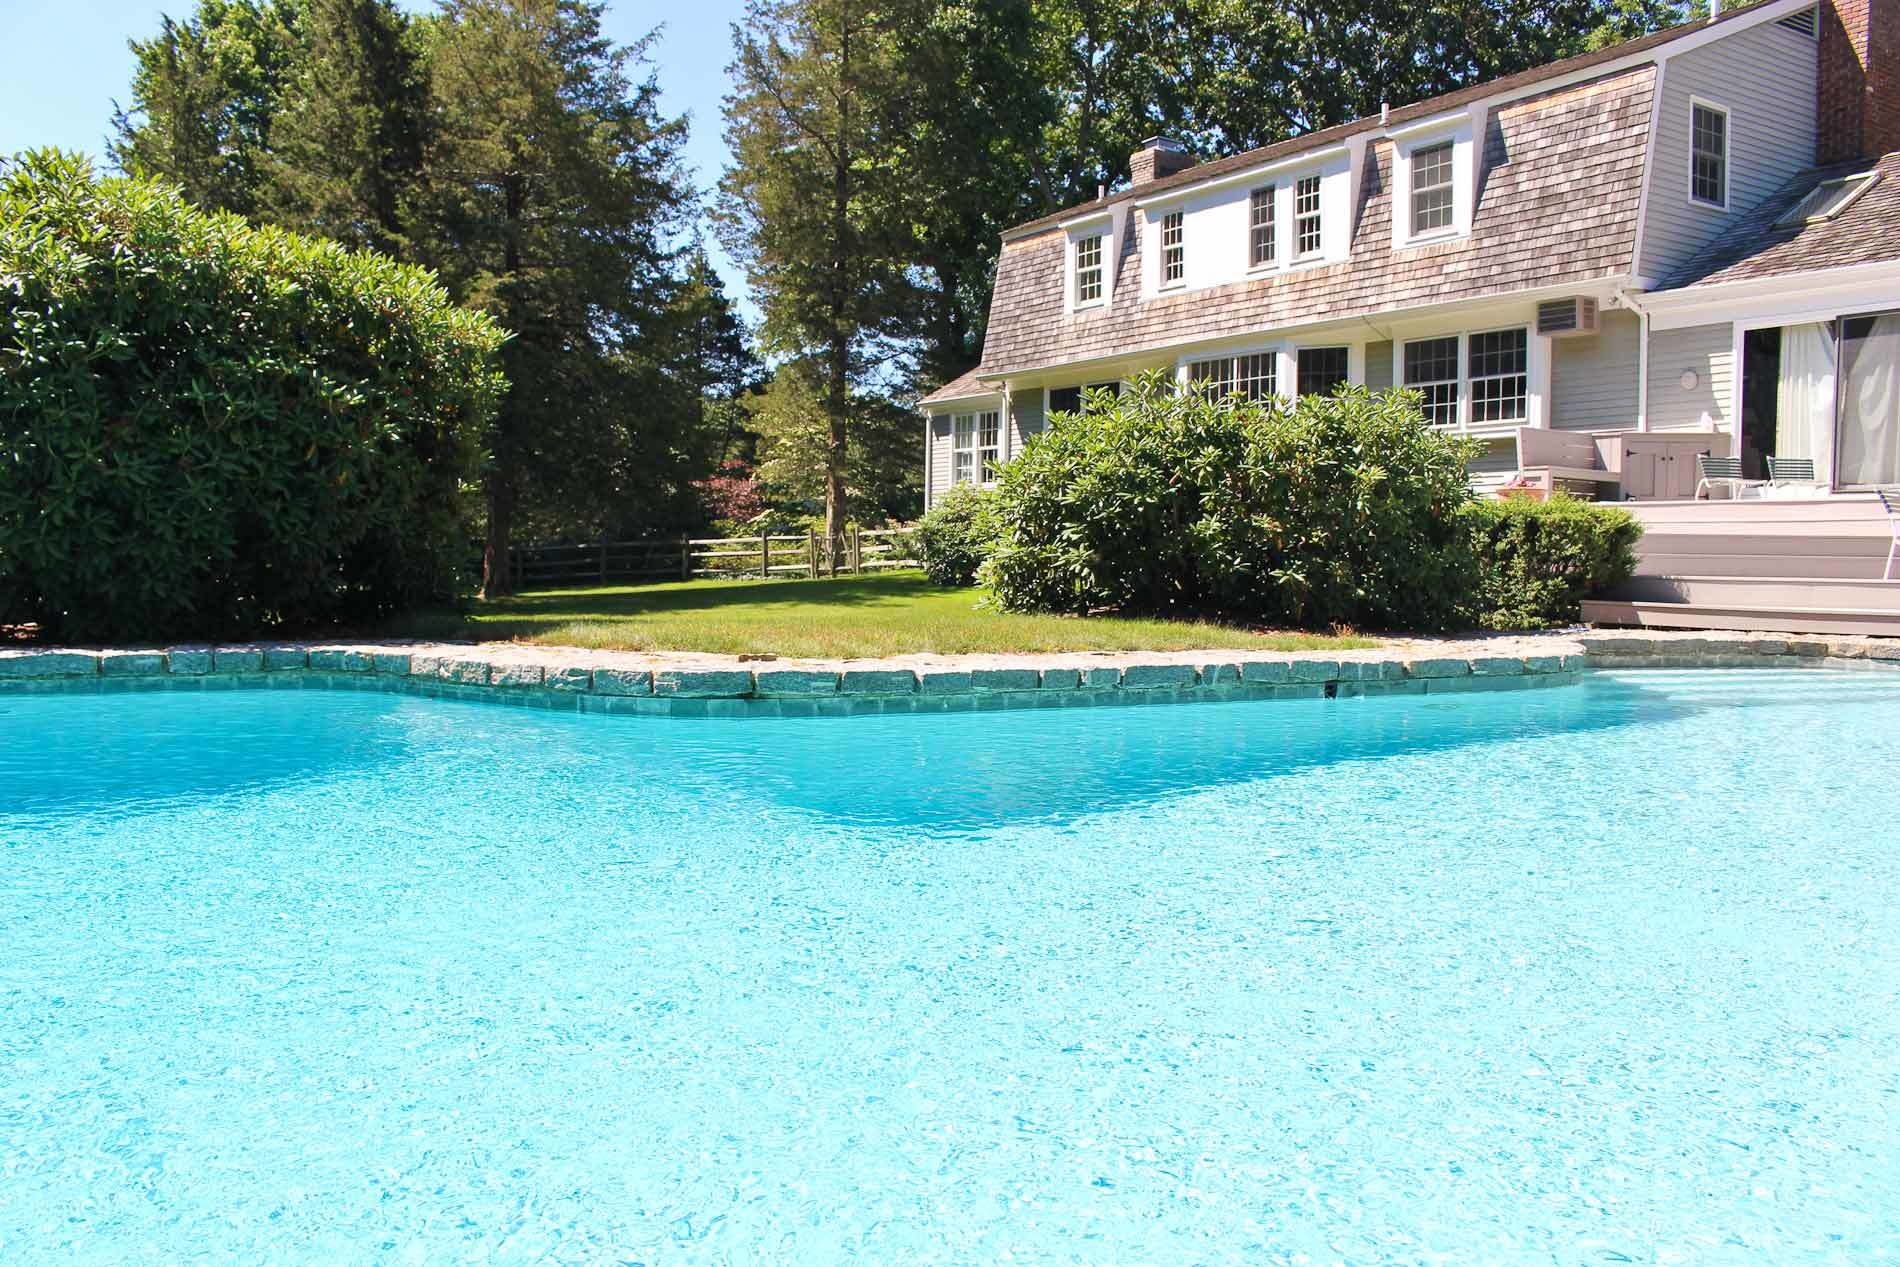 Homes with swimming pool for sale in danbury ct find and for Houses with swimming pools inside for sale